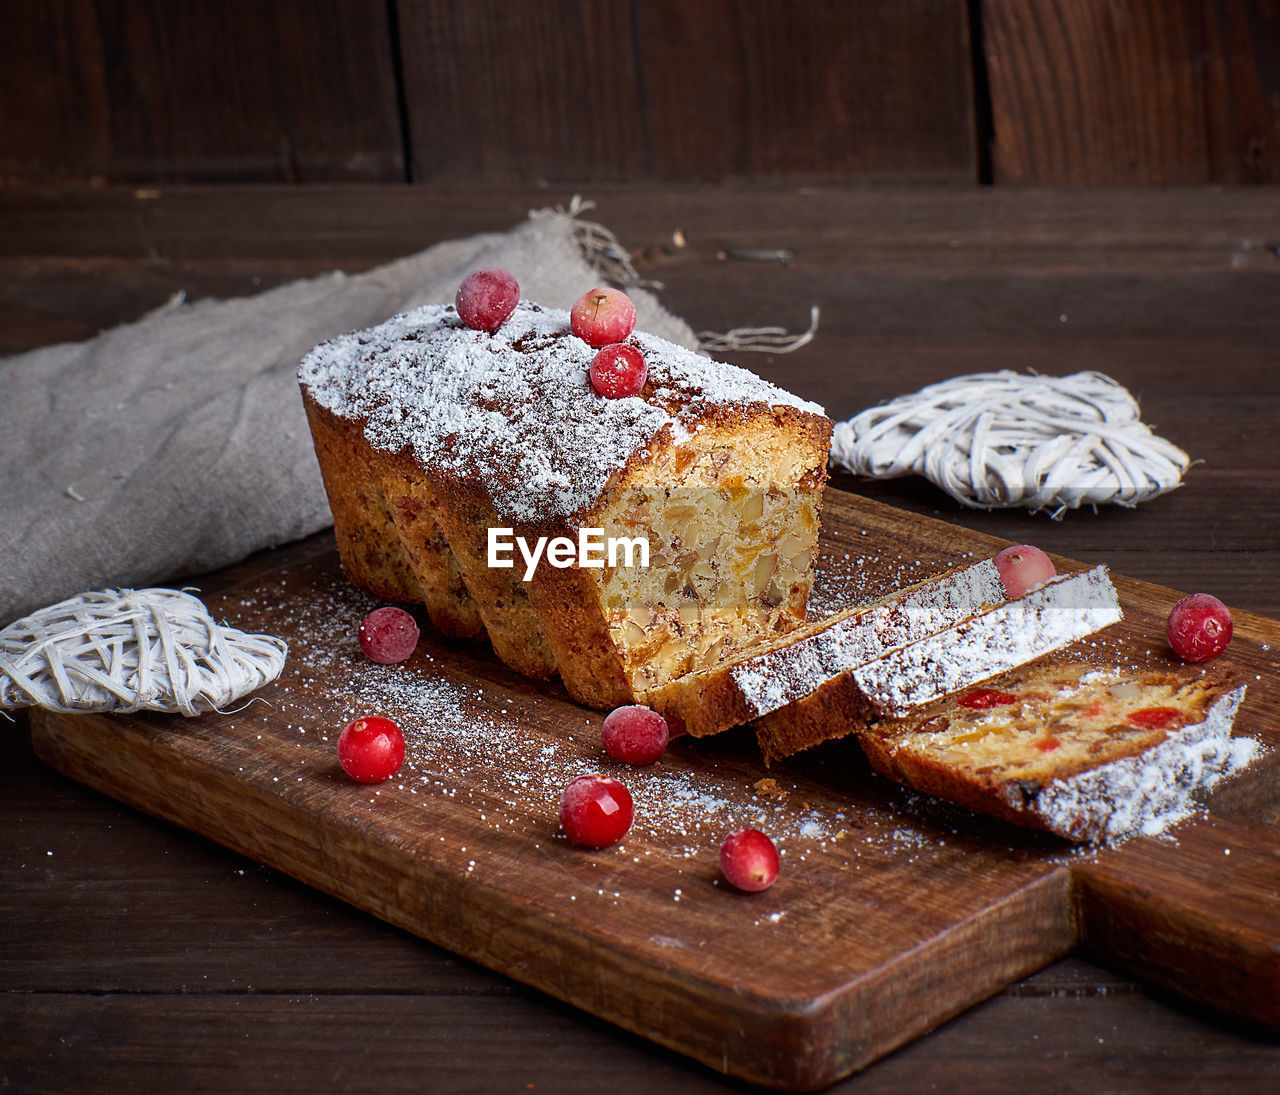 food, food and drink, freshness, wood - material, sweet food, still life, cutting board, indulgence, table, baked, indoors, sweet, no people, ready-to-eat, temptation, fruit, dessert, healthy eating, slice, close-up, powdered sugar